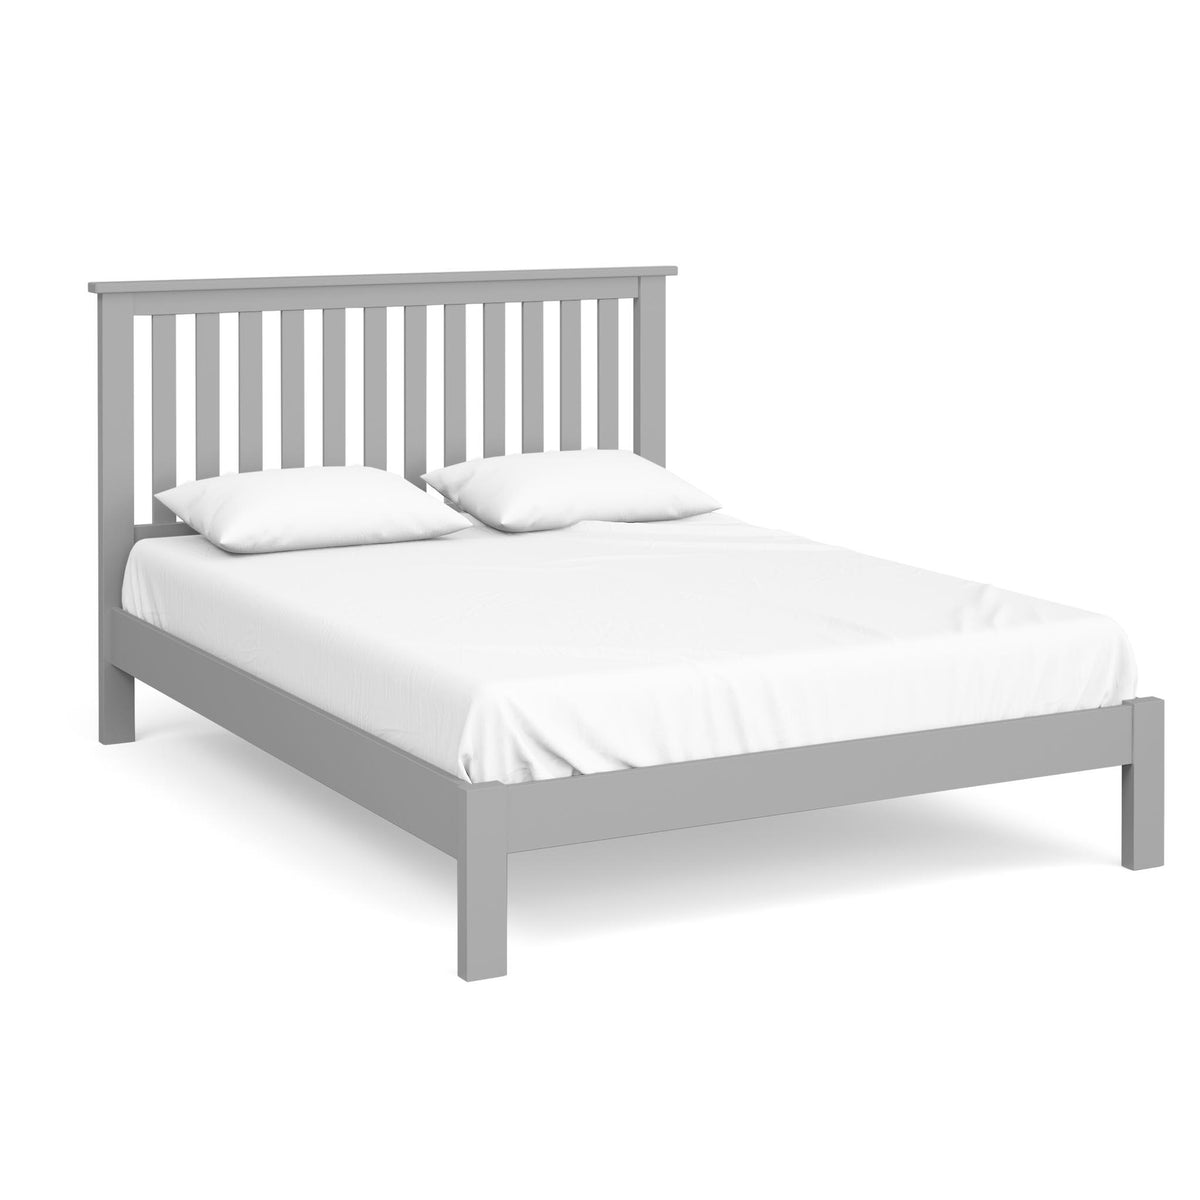 The Cornish Grey Wooden 5 Ft King Size Bed Frame from Roseland Furniture